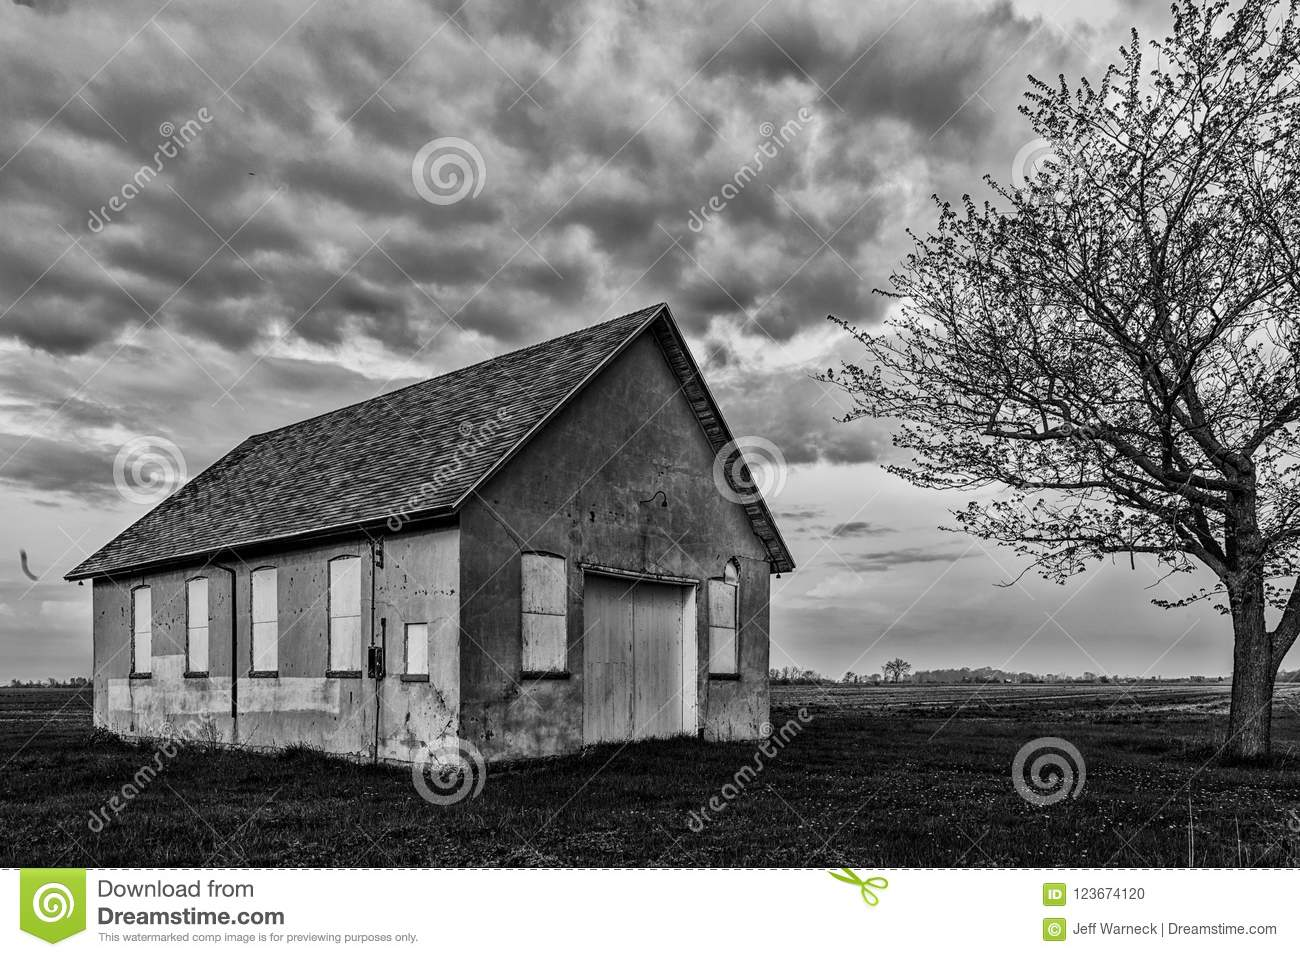 3 349 Old Black White Barn Photos Free Royalty Free Stock Photos From Dreamstime